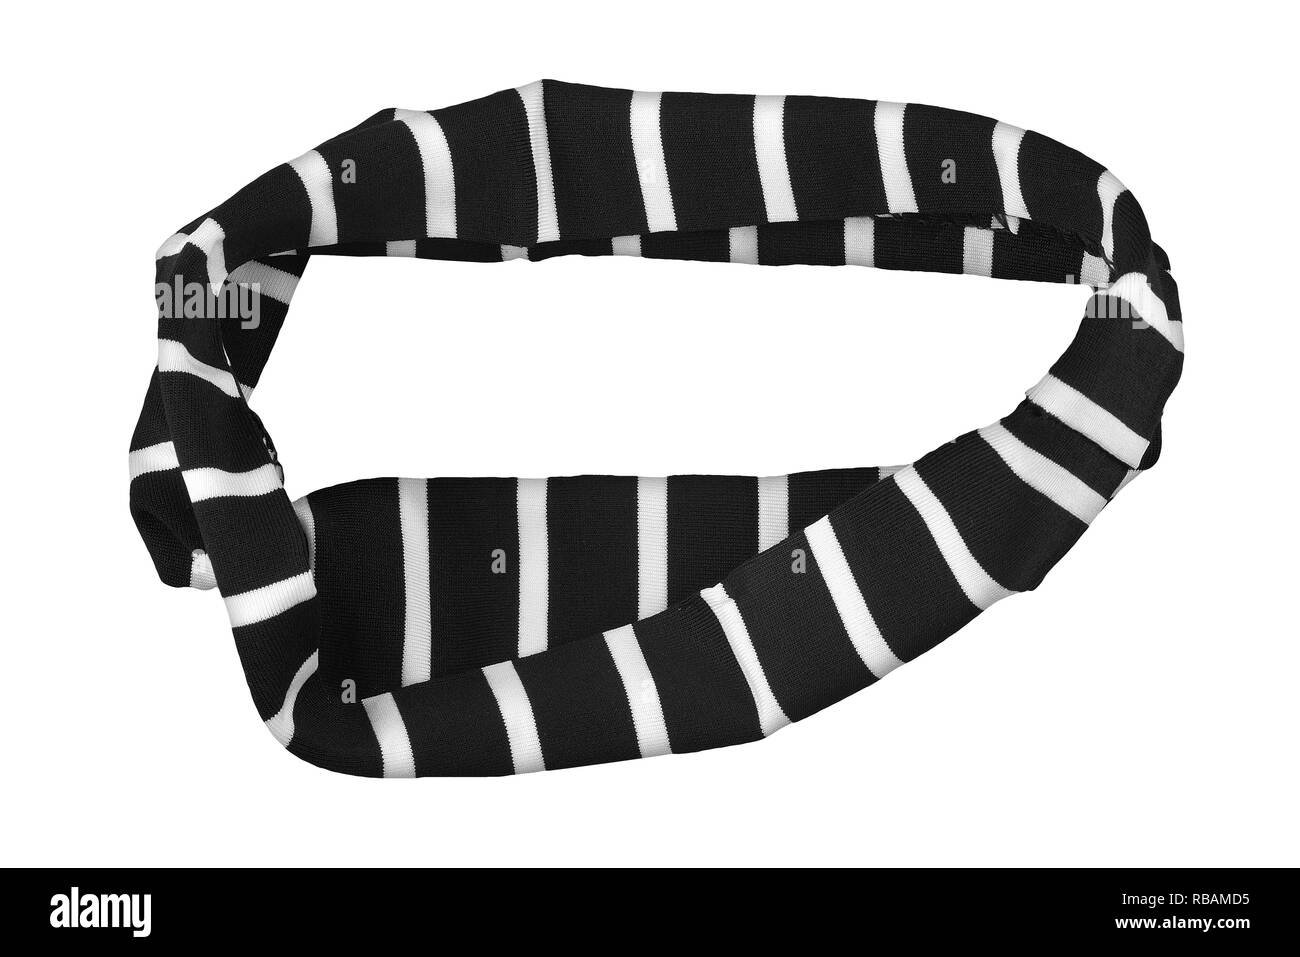 Black with white stripes elastic textile headband, fashion item isolated on white background, clipping path included - Stock Image